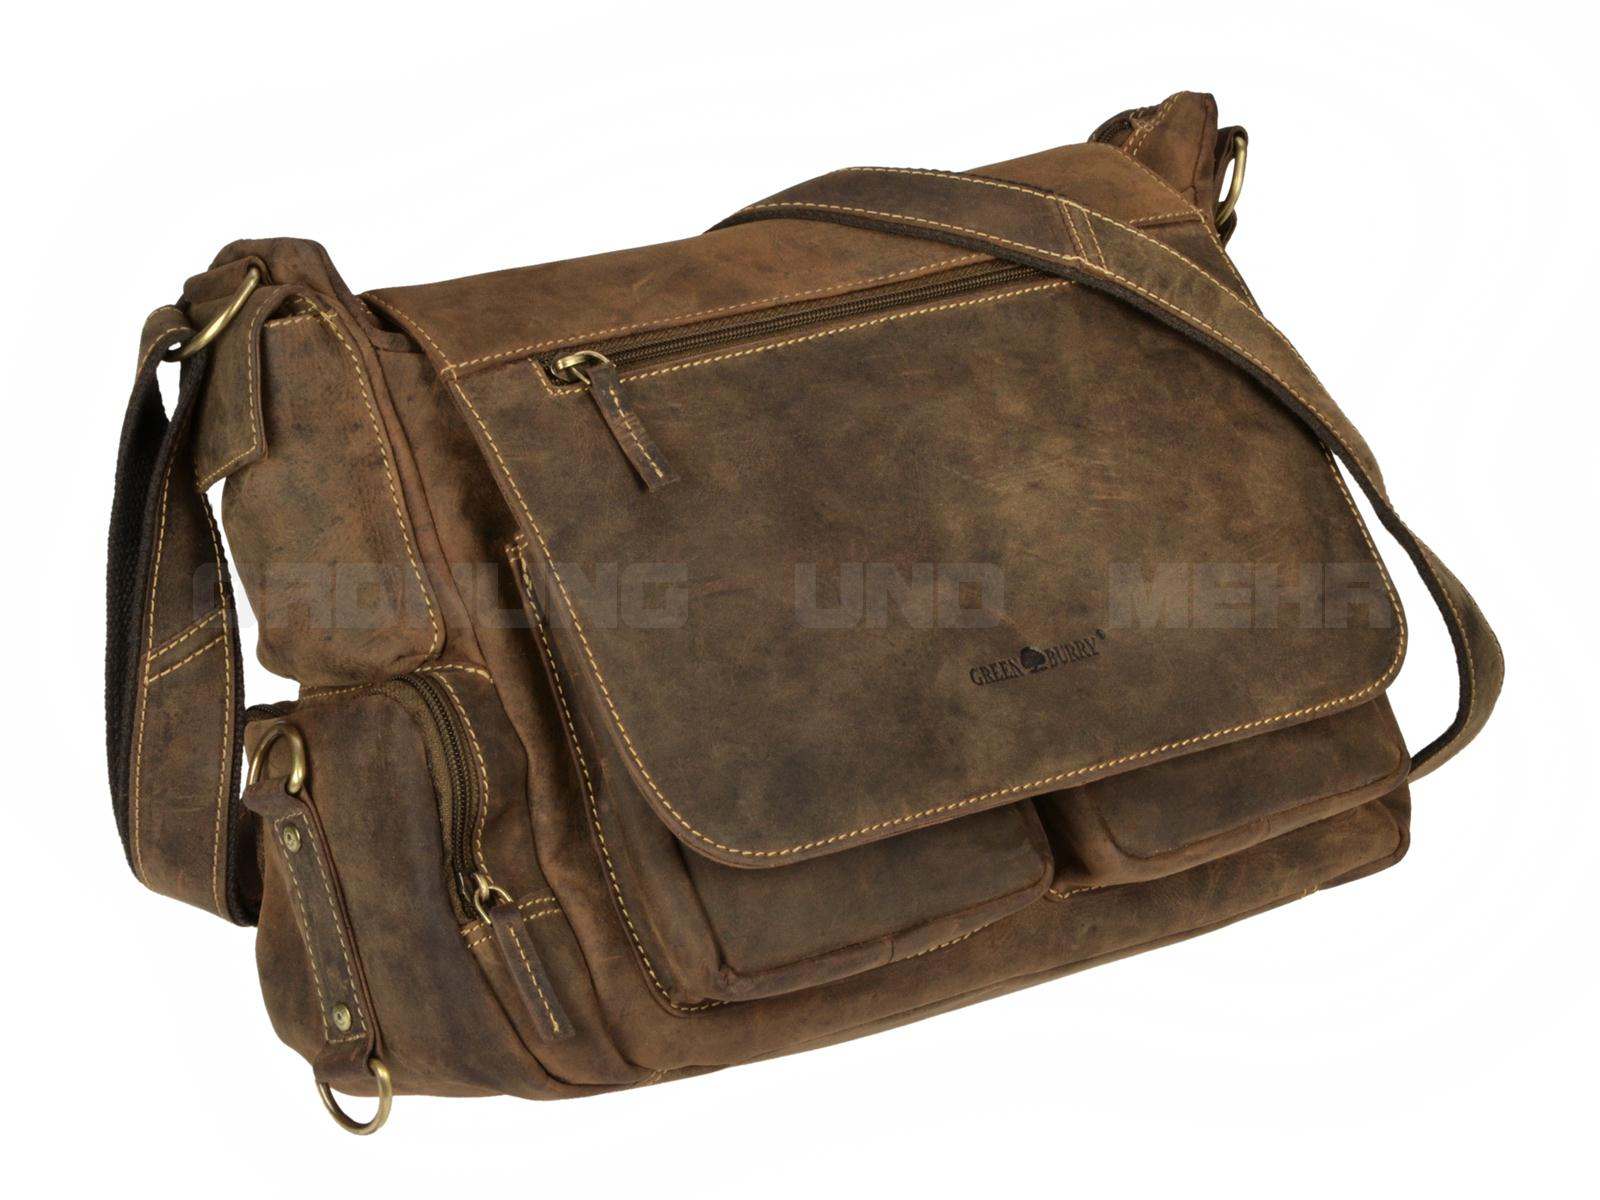 Coole Ledertaschen - der Greenburry Fishing Bag 1763A-25 Vintage rustikal antikbraunCoole Ledertaschen - der Greenburry Fishing Bag 1763A-25 Vintage rustikal antikbraun